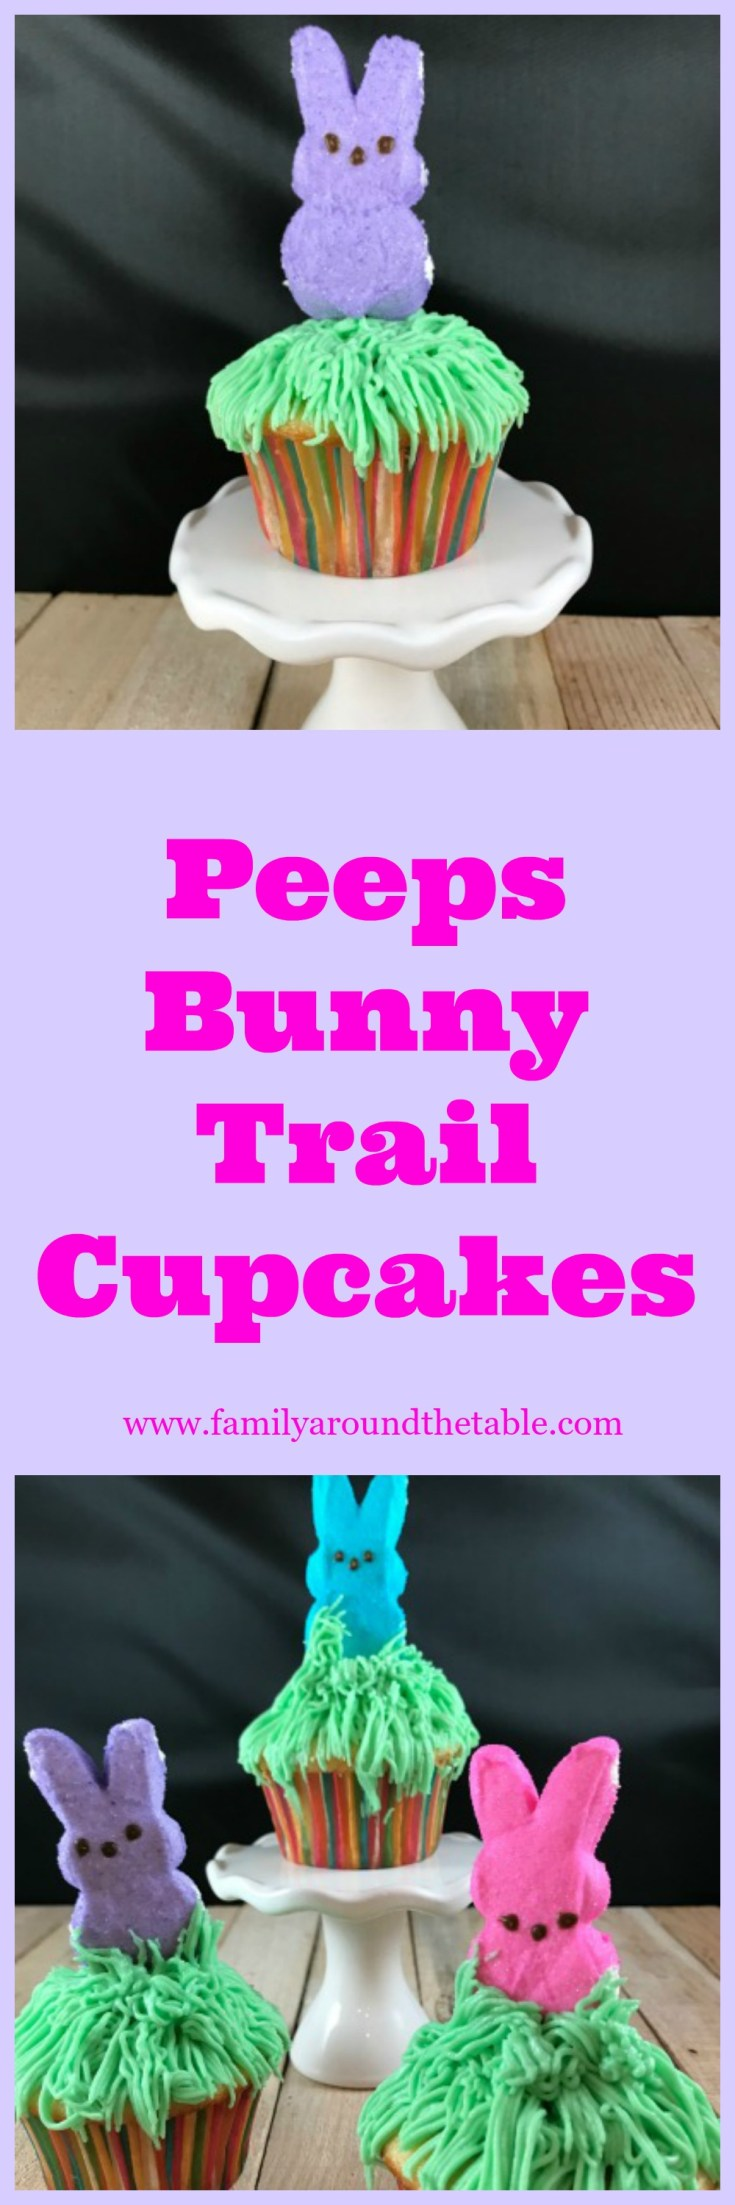 Peeps Bunny Trail Cupcakes will be a hit at your Easter celebration.